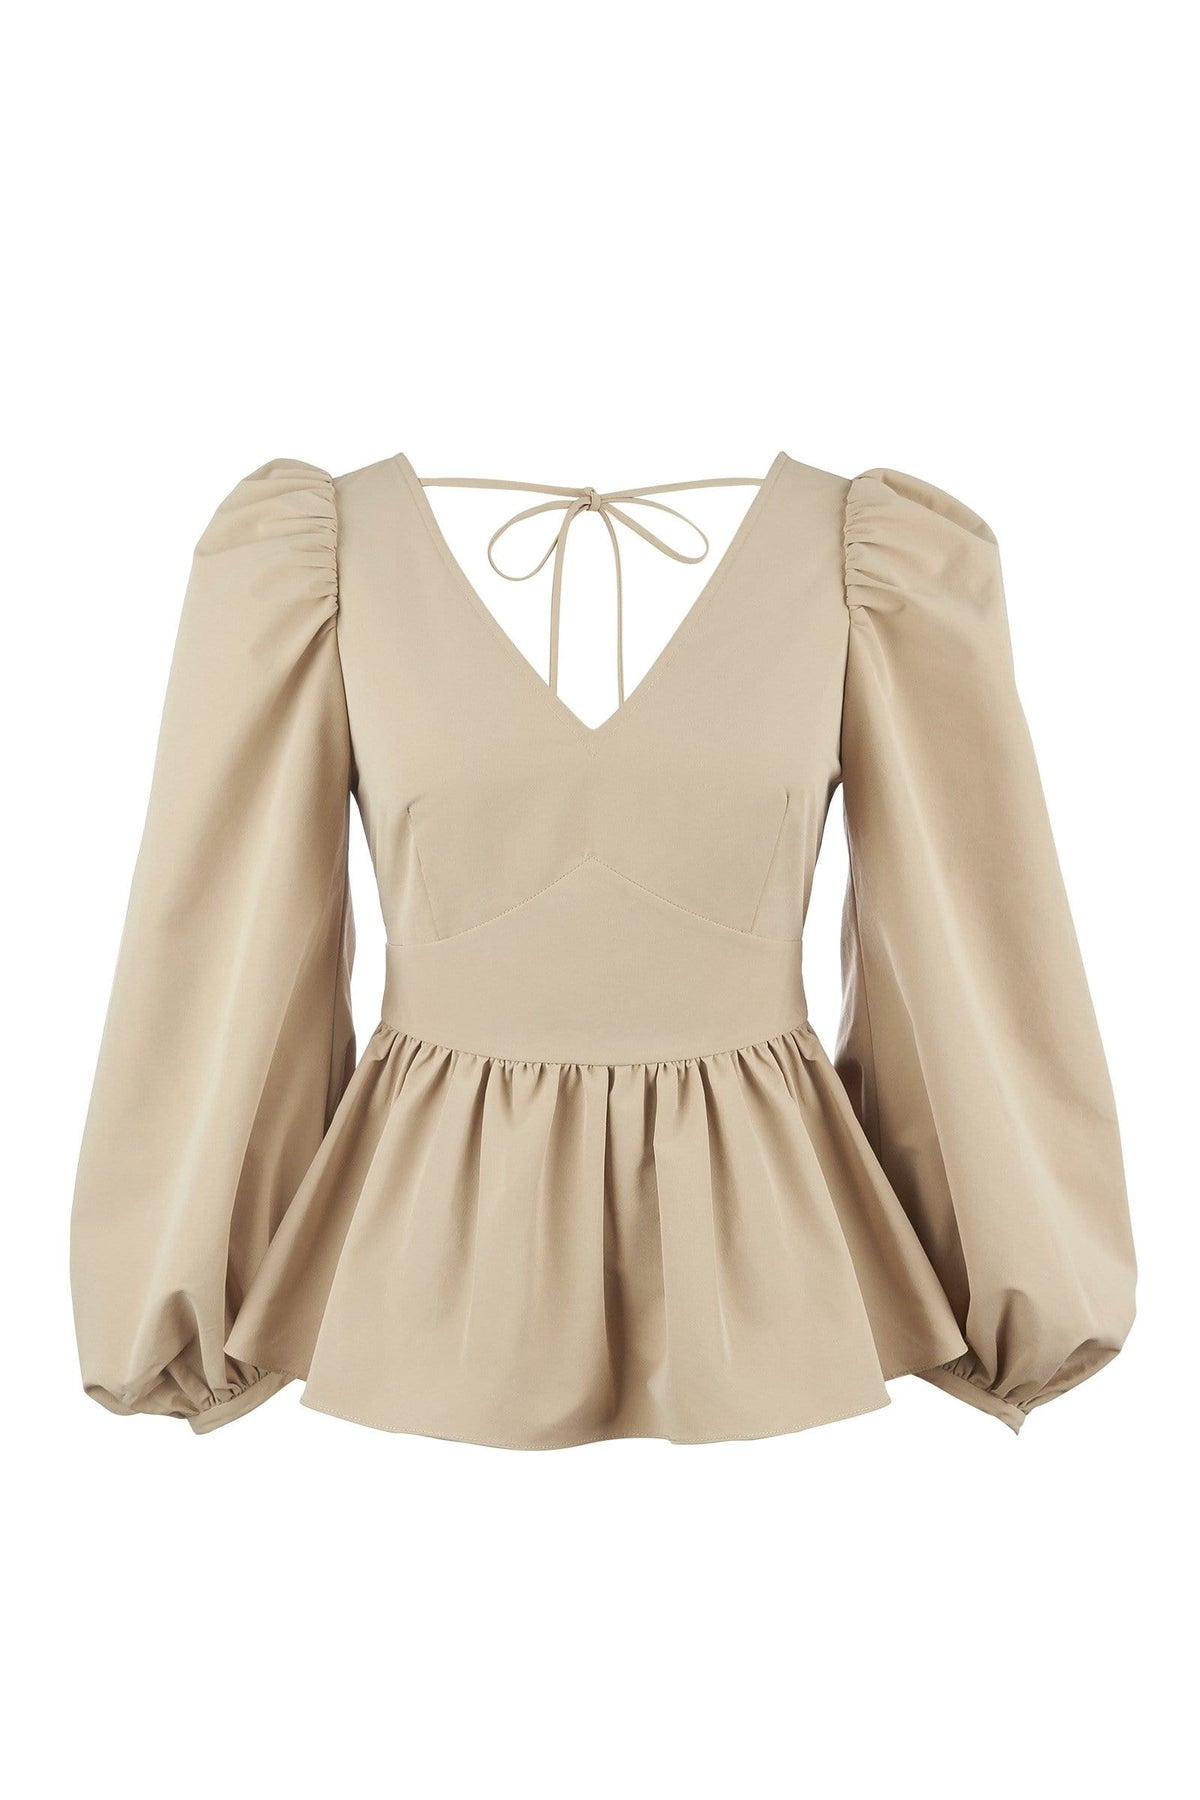 Edith Tan Tutu Top